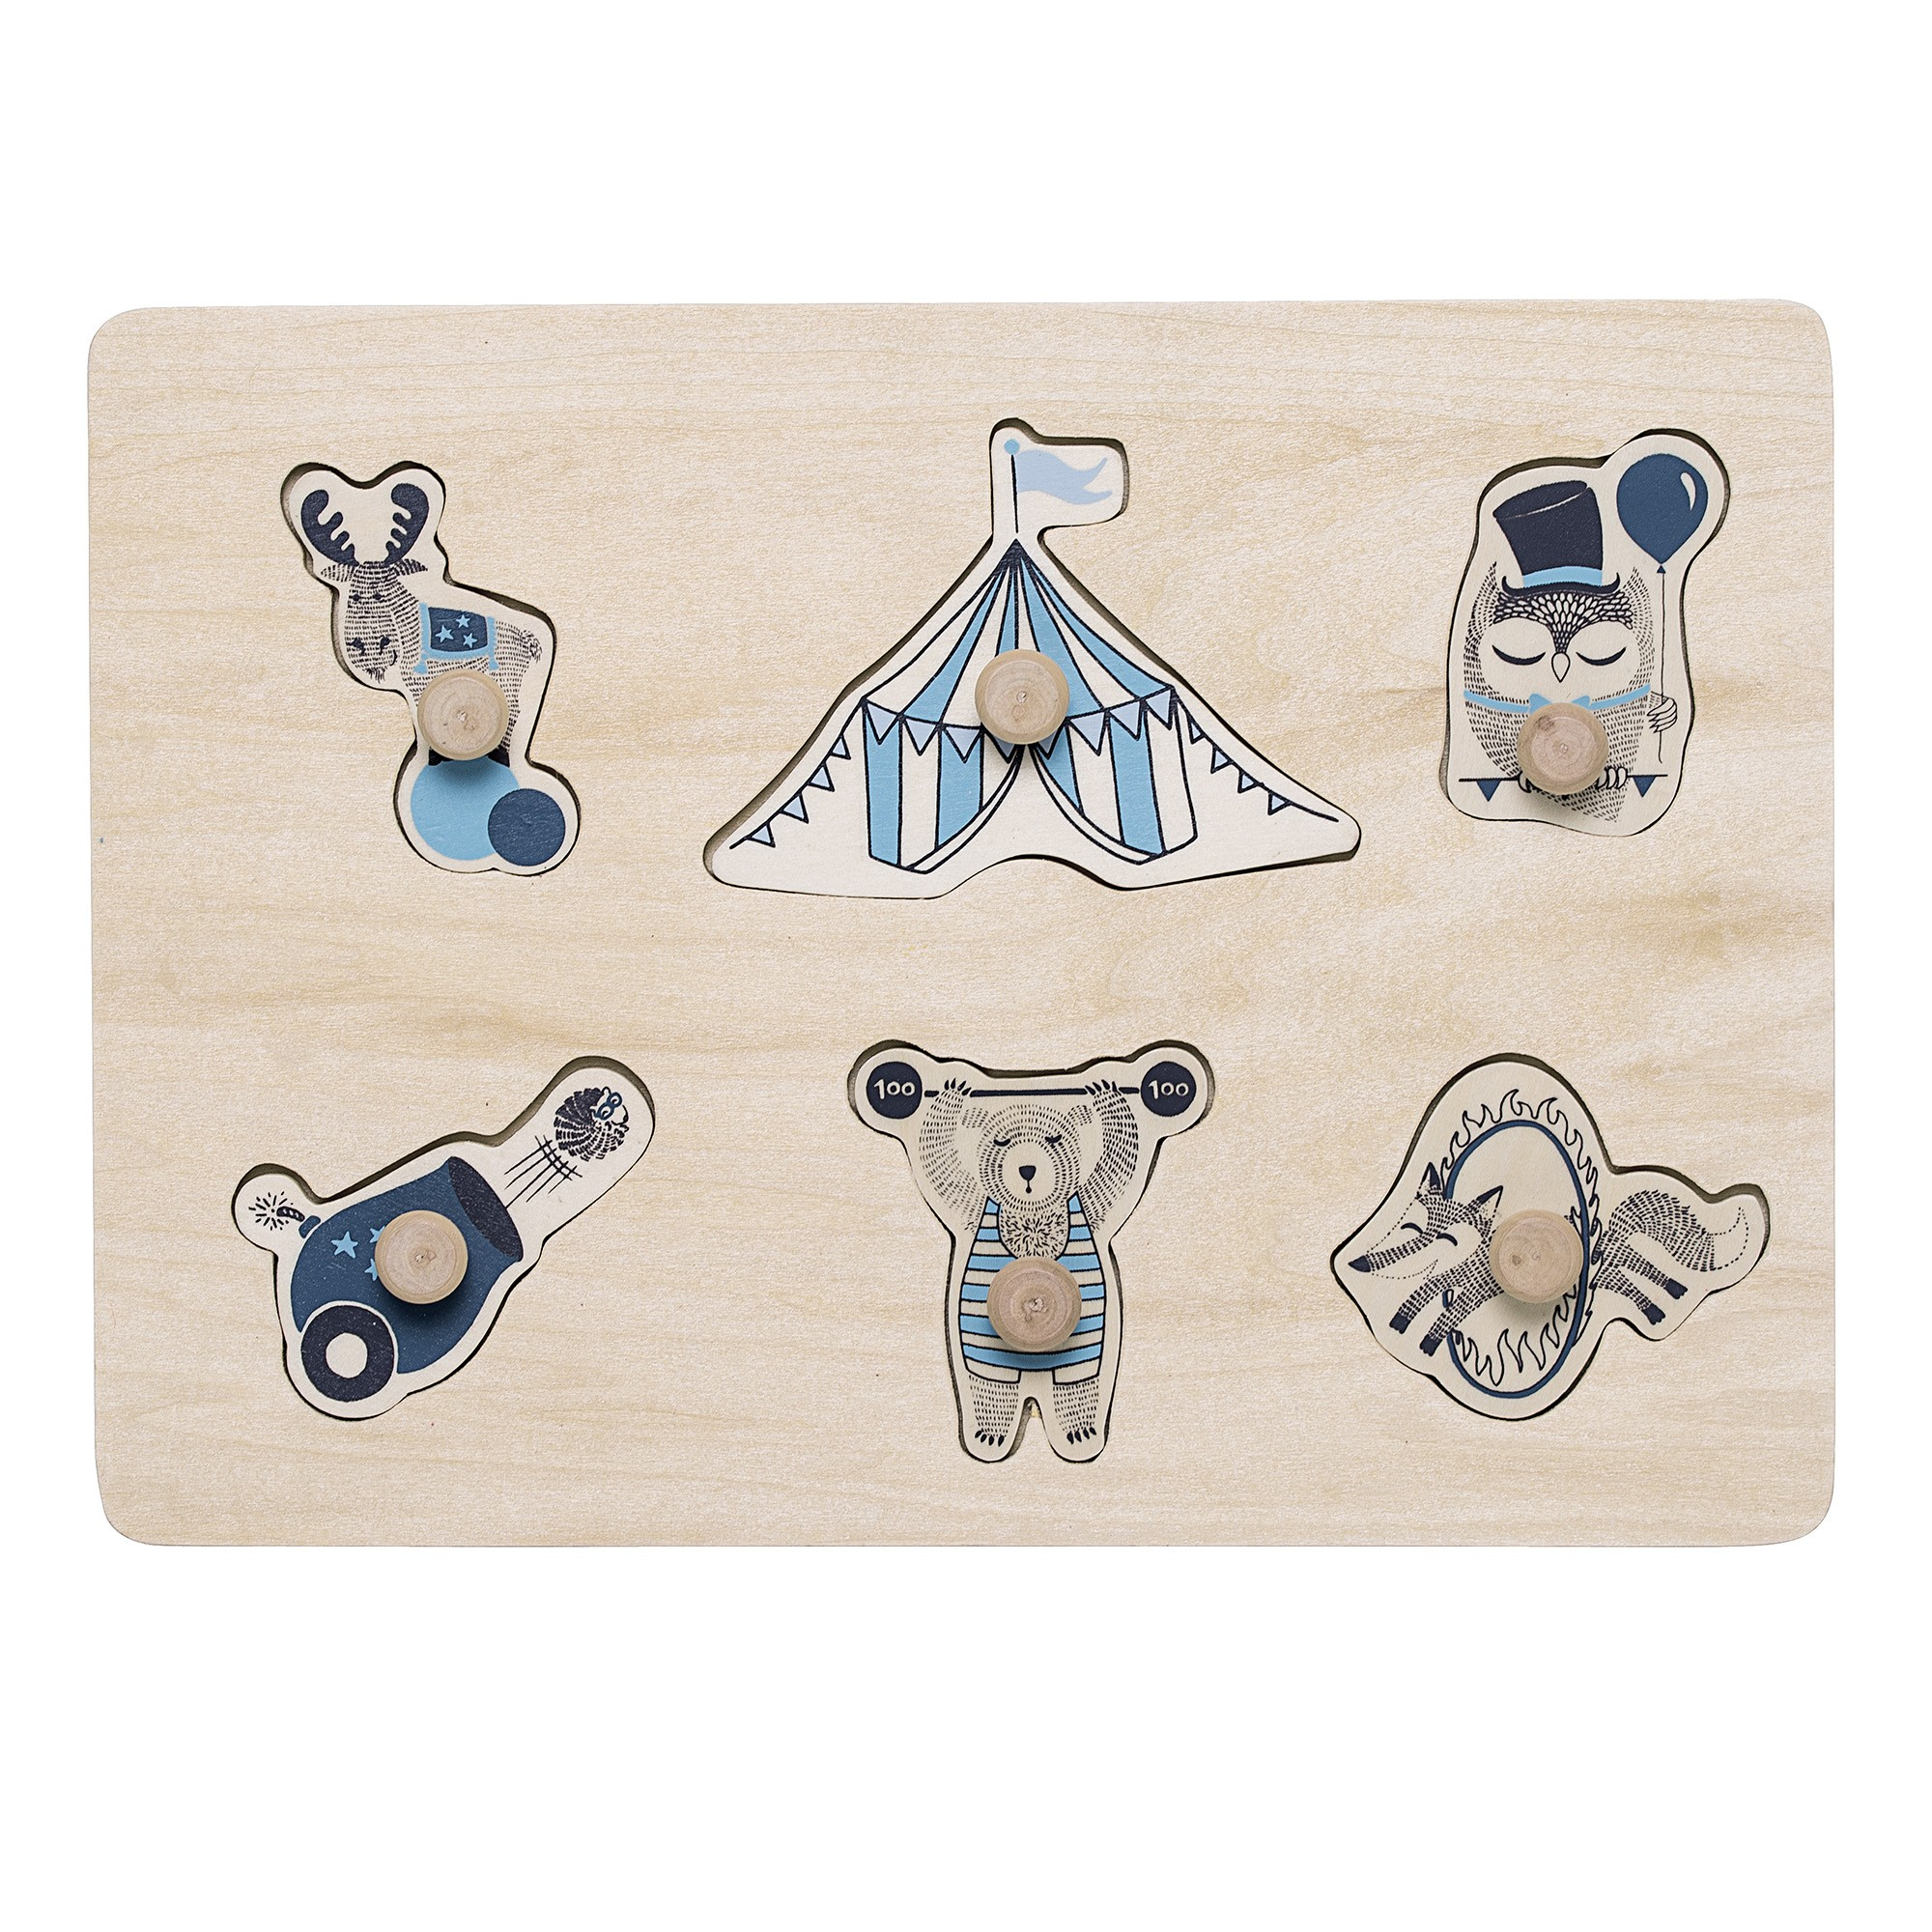 Image of   Circus puzzle w/knobs, blue, plywood